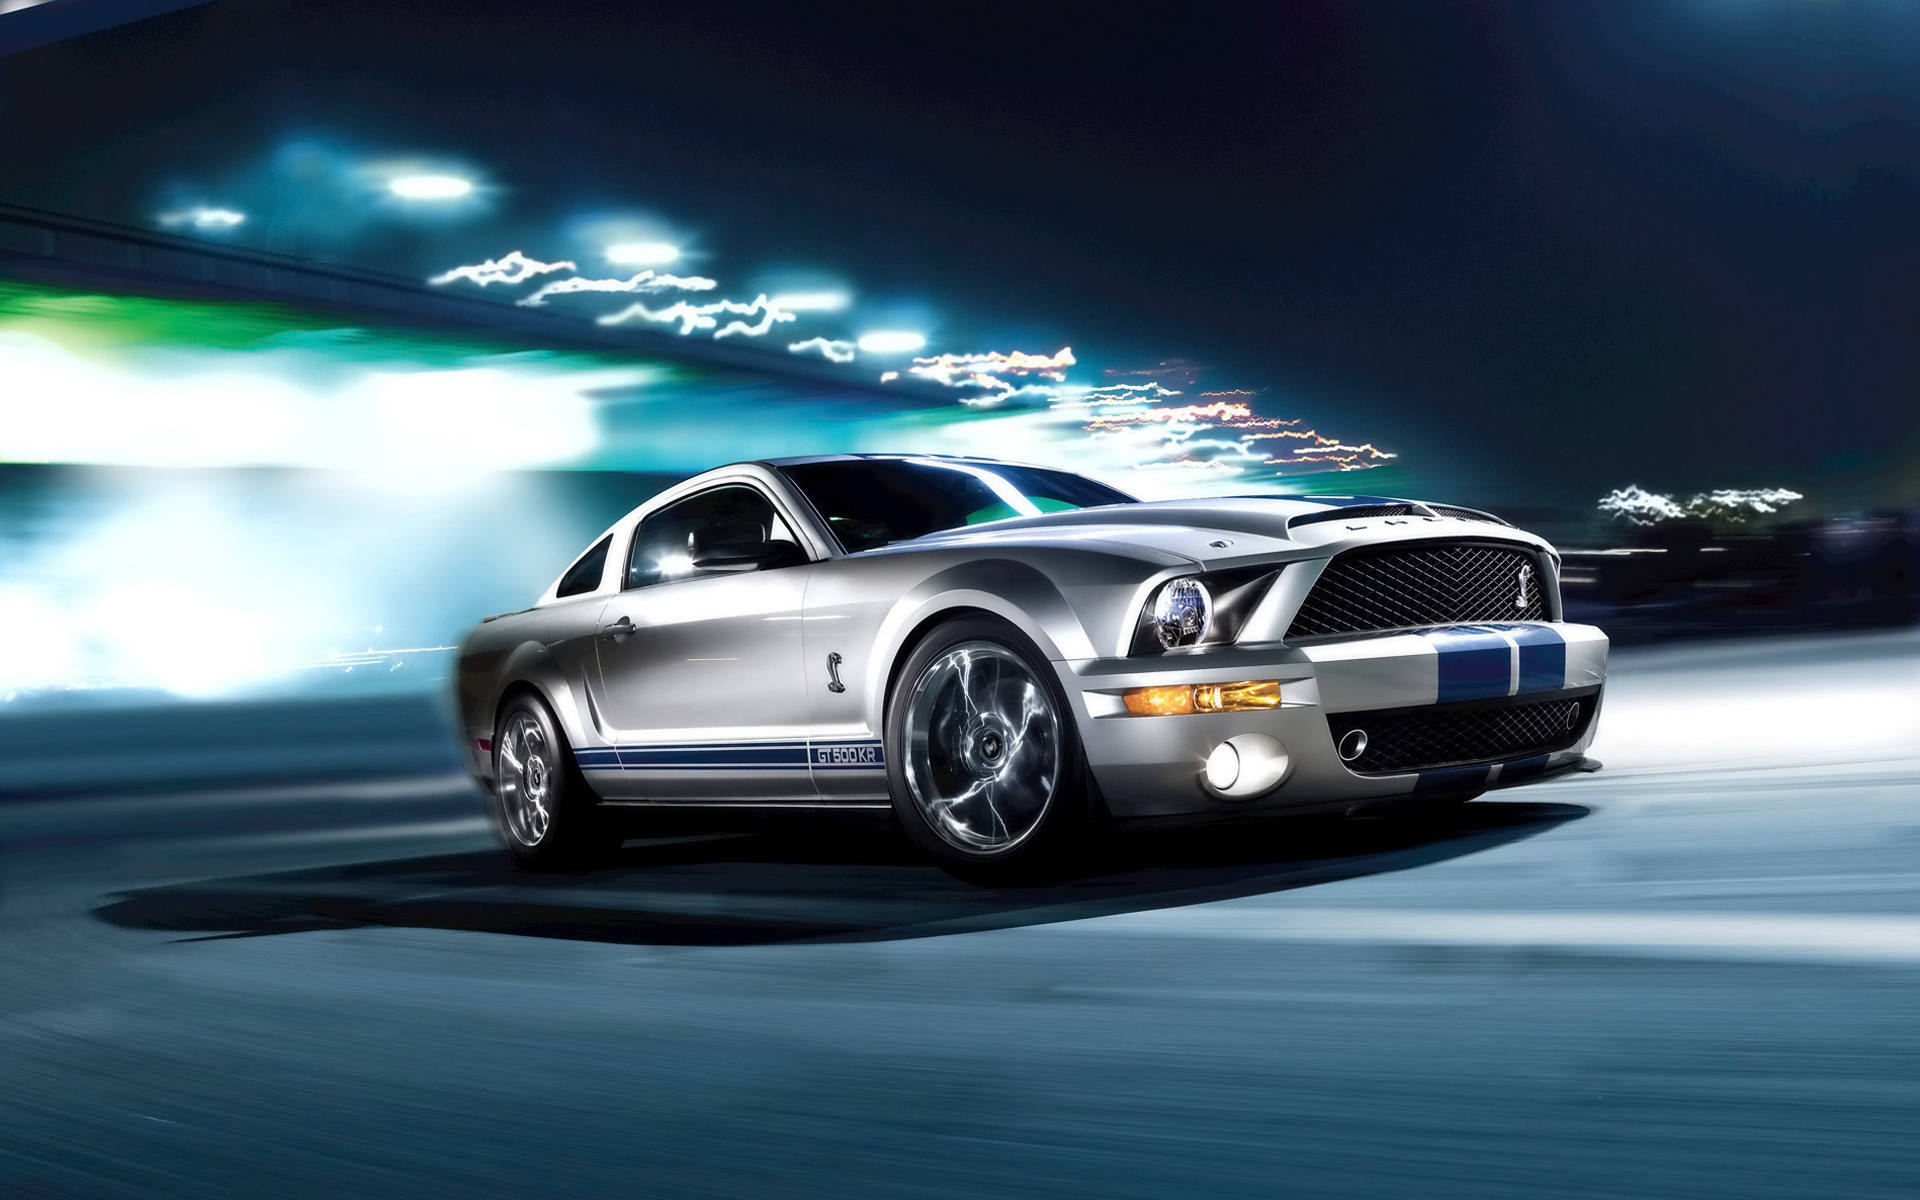 339 ford mustang hd wallpapers | background images - wallpaper abyss